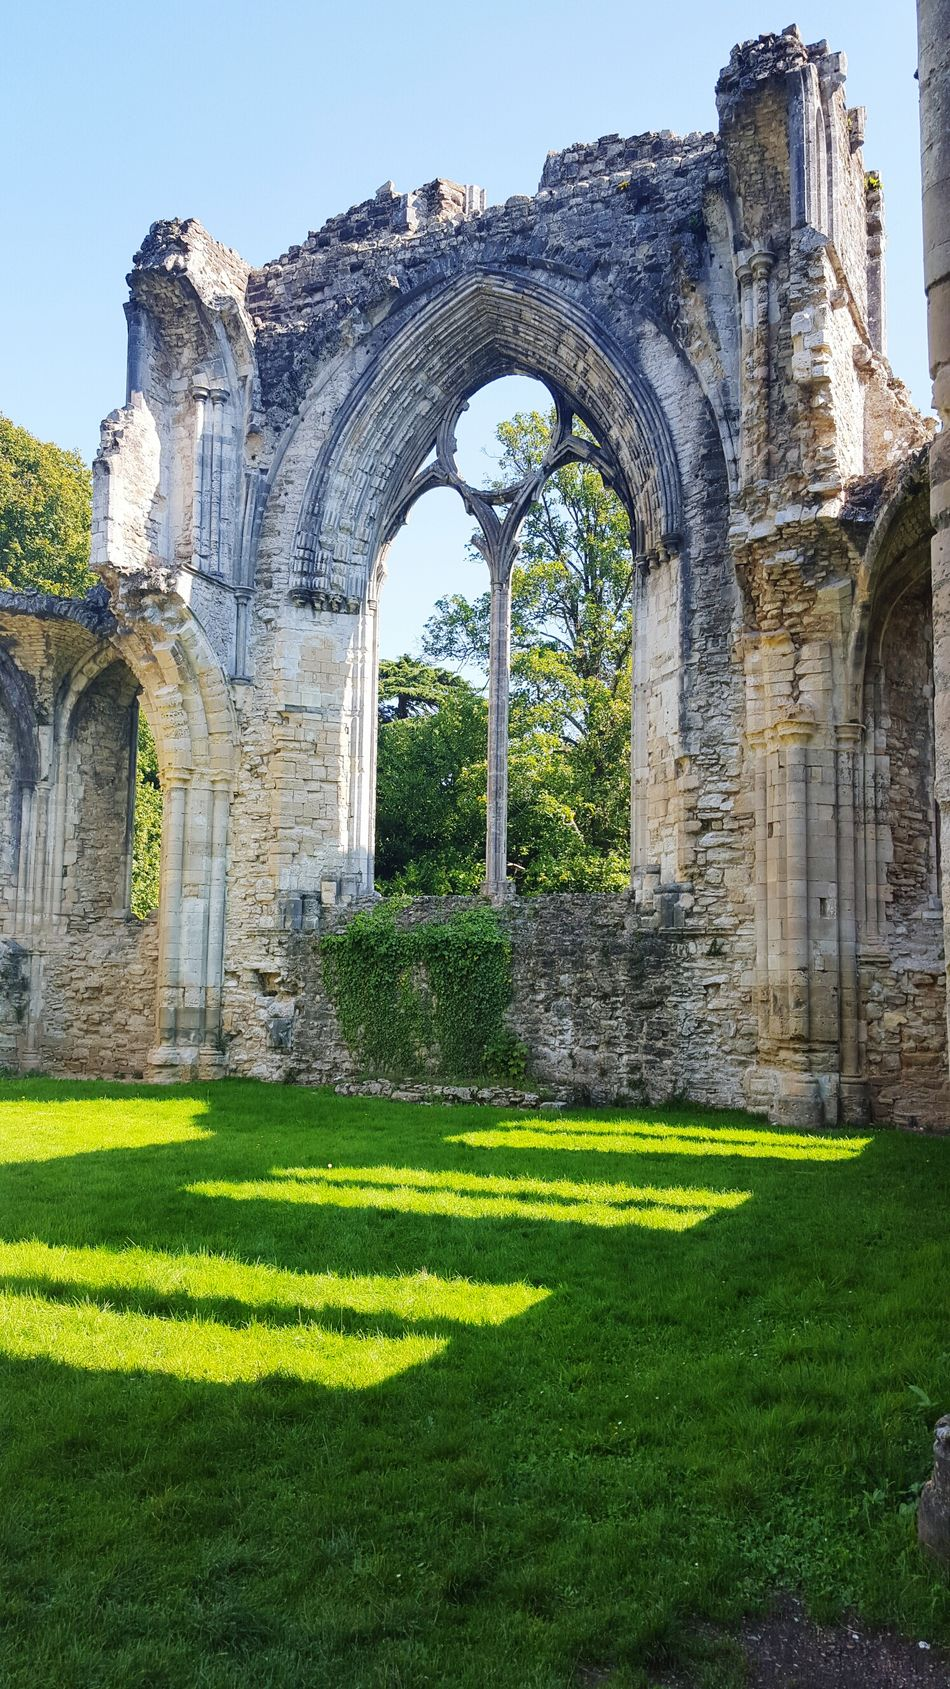 Historical Site Abby Ruins Arched Windows Historical Building Visaul Art Architecture_collection Old Windows Creative Eye